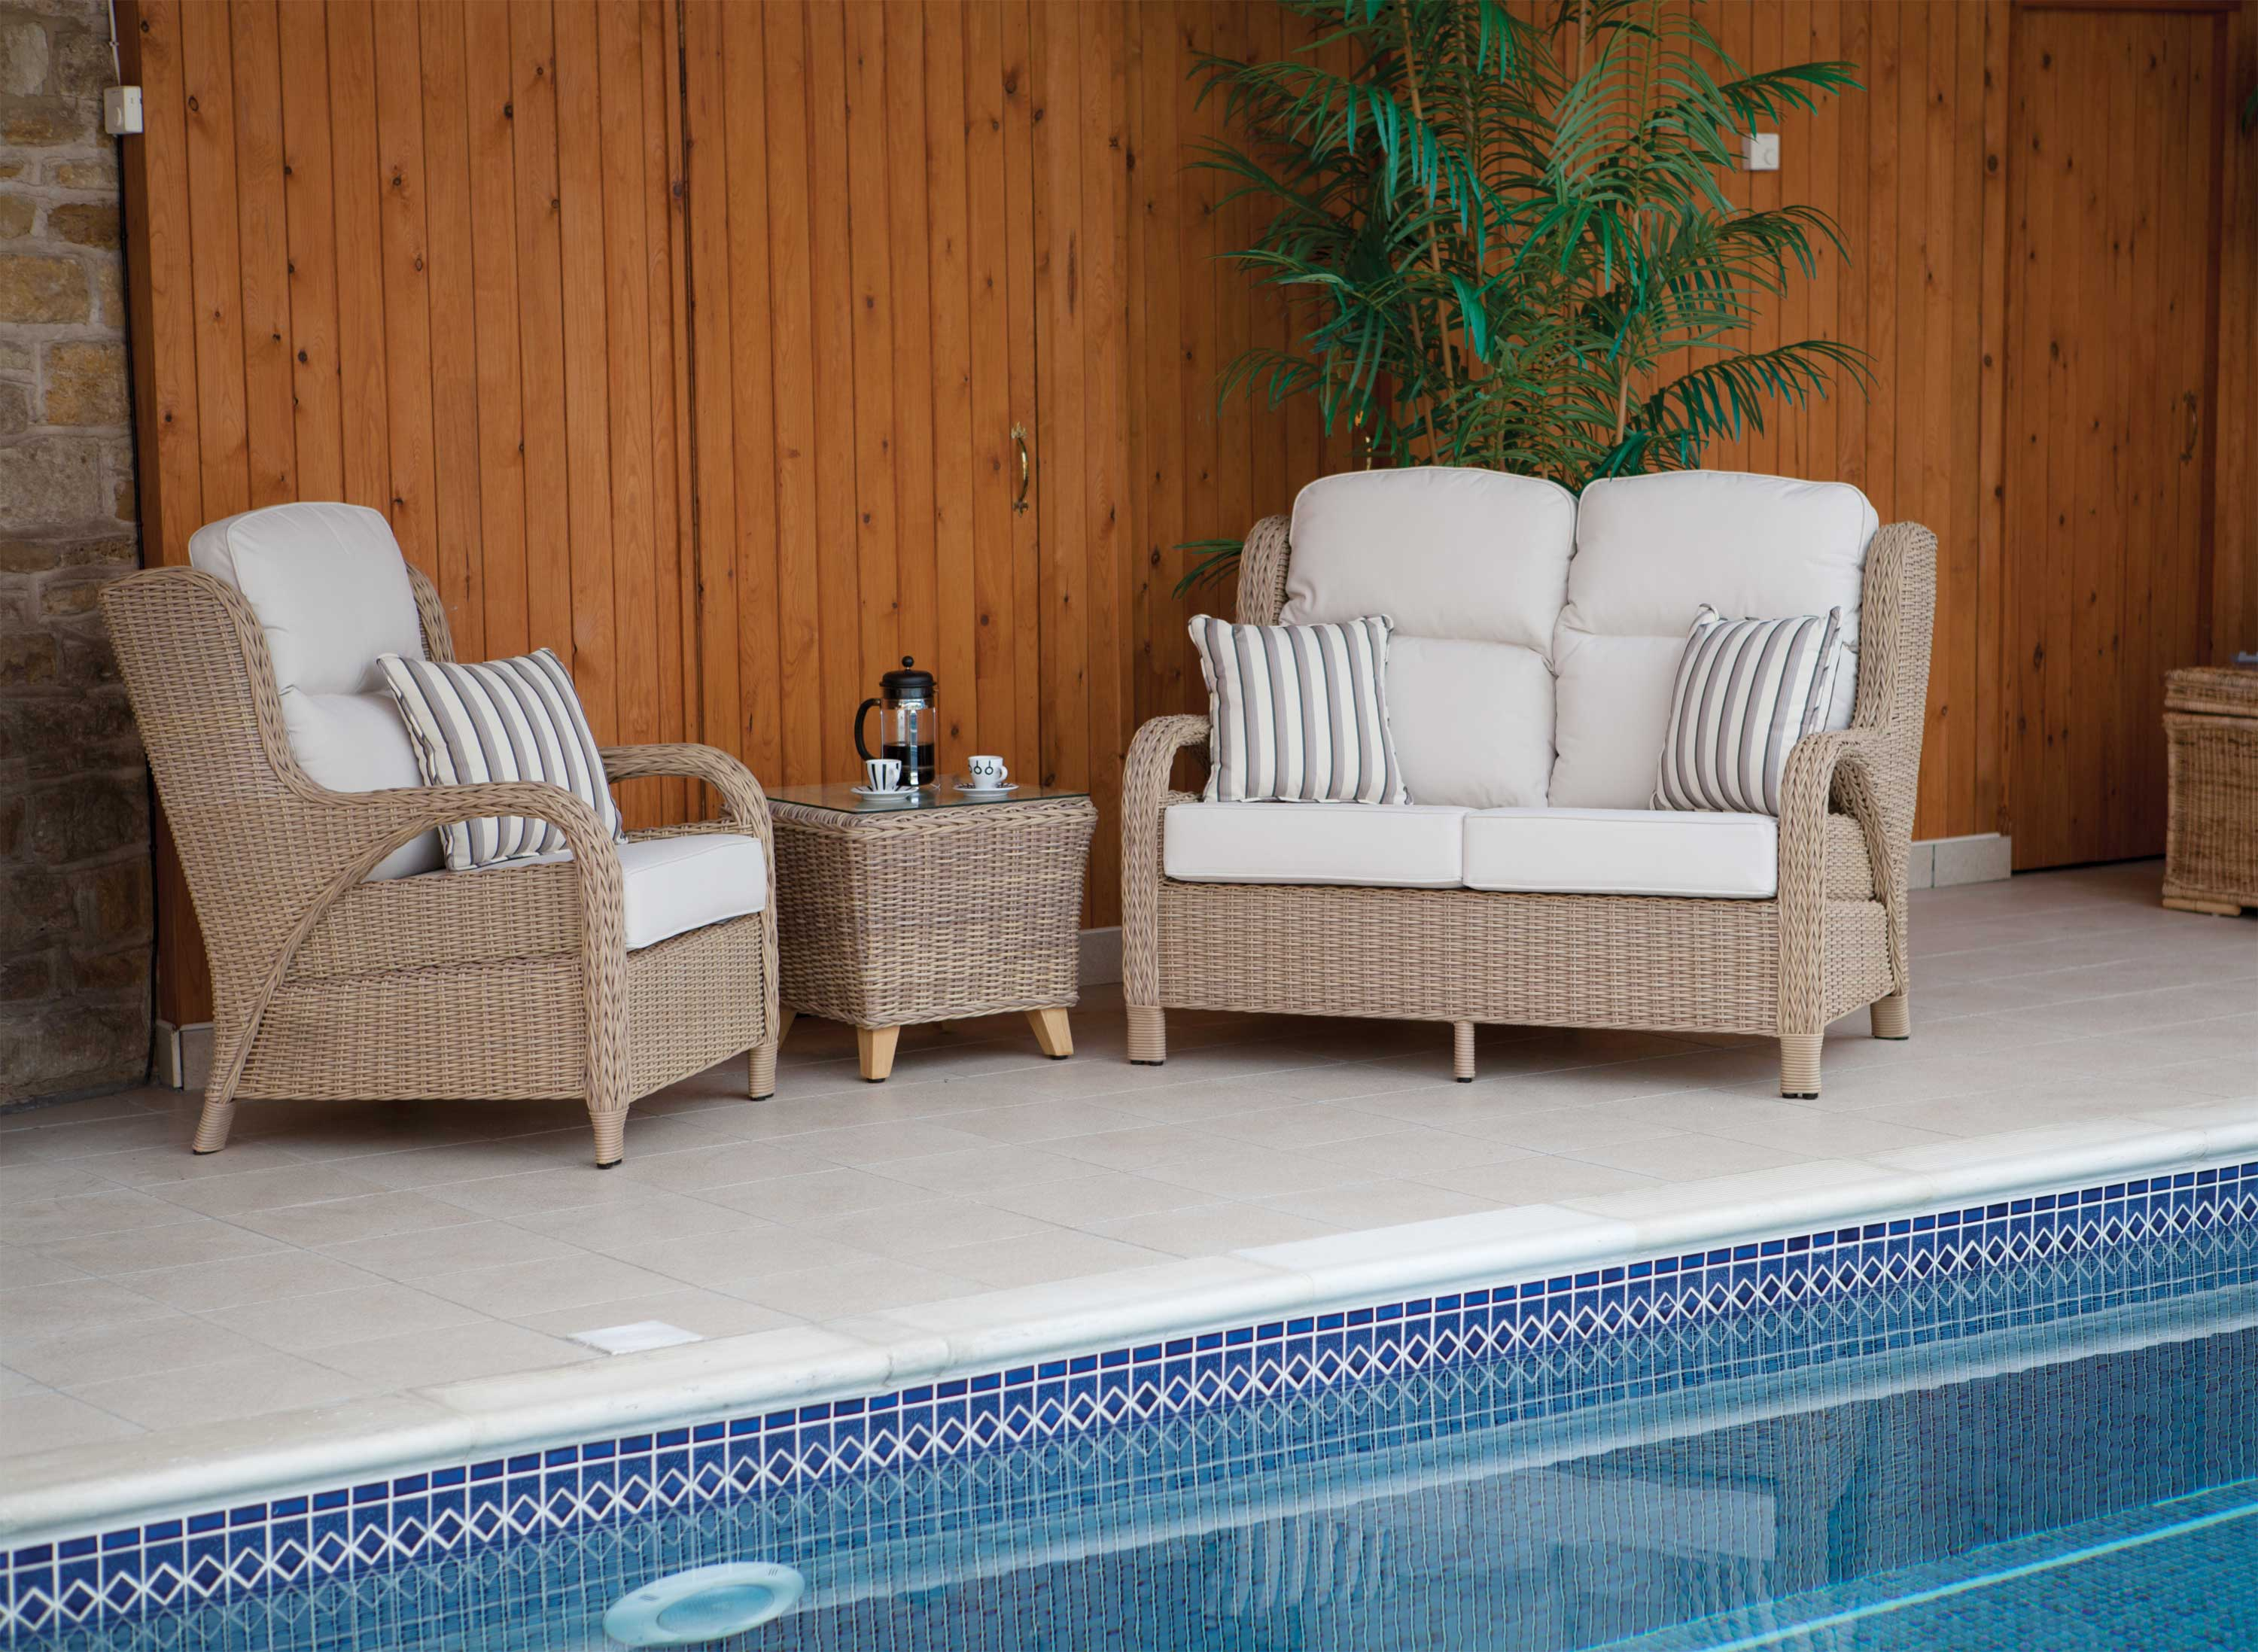 Cane Conservatory Furniture For Indoor And Outdoor Design: Cane Chair Wodden Door Coffee Pot Plant Vase Swimming Pool